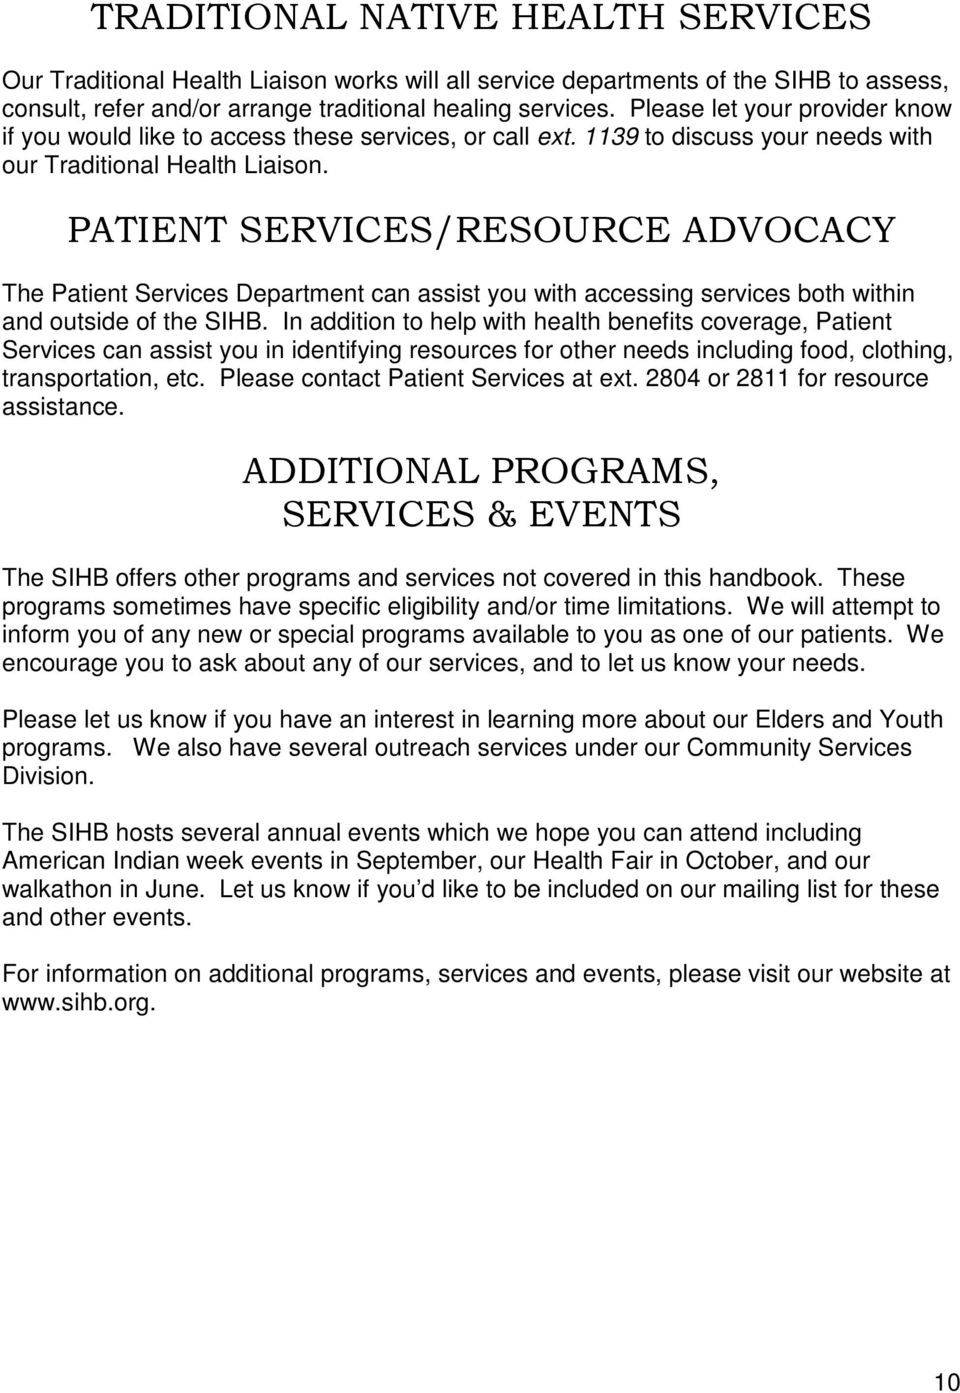 PATIENT SERVICES/RESOURCE ADVOCACY The Patient Services Department can assist you with accessing services both within and outside of the SIHB.